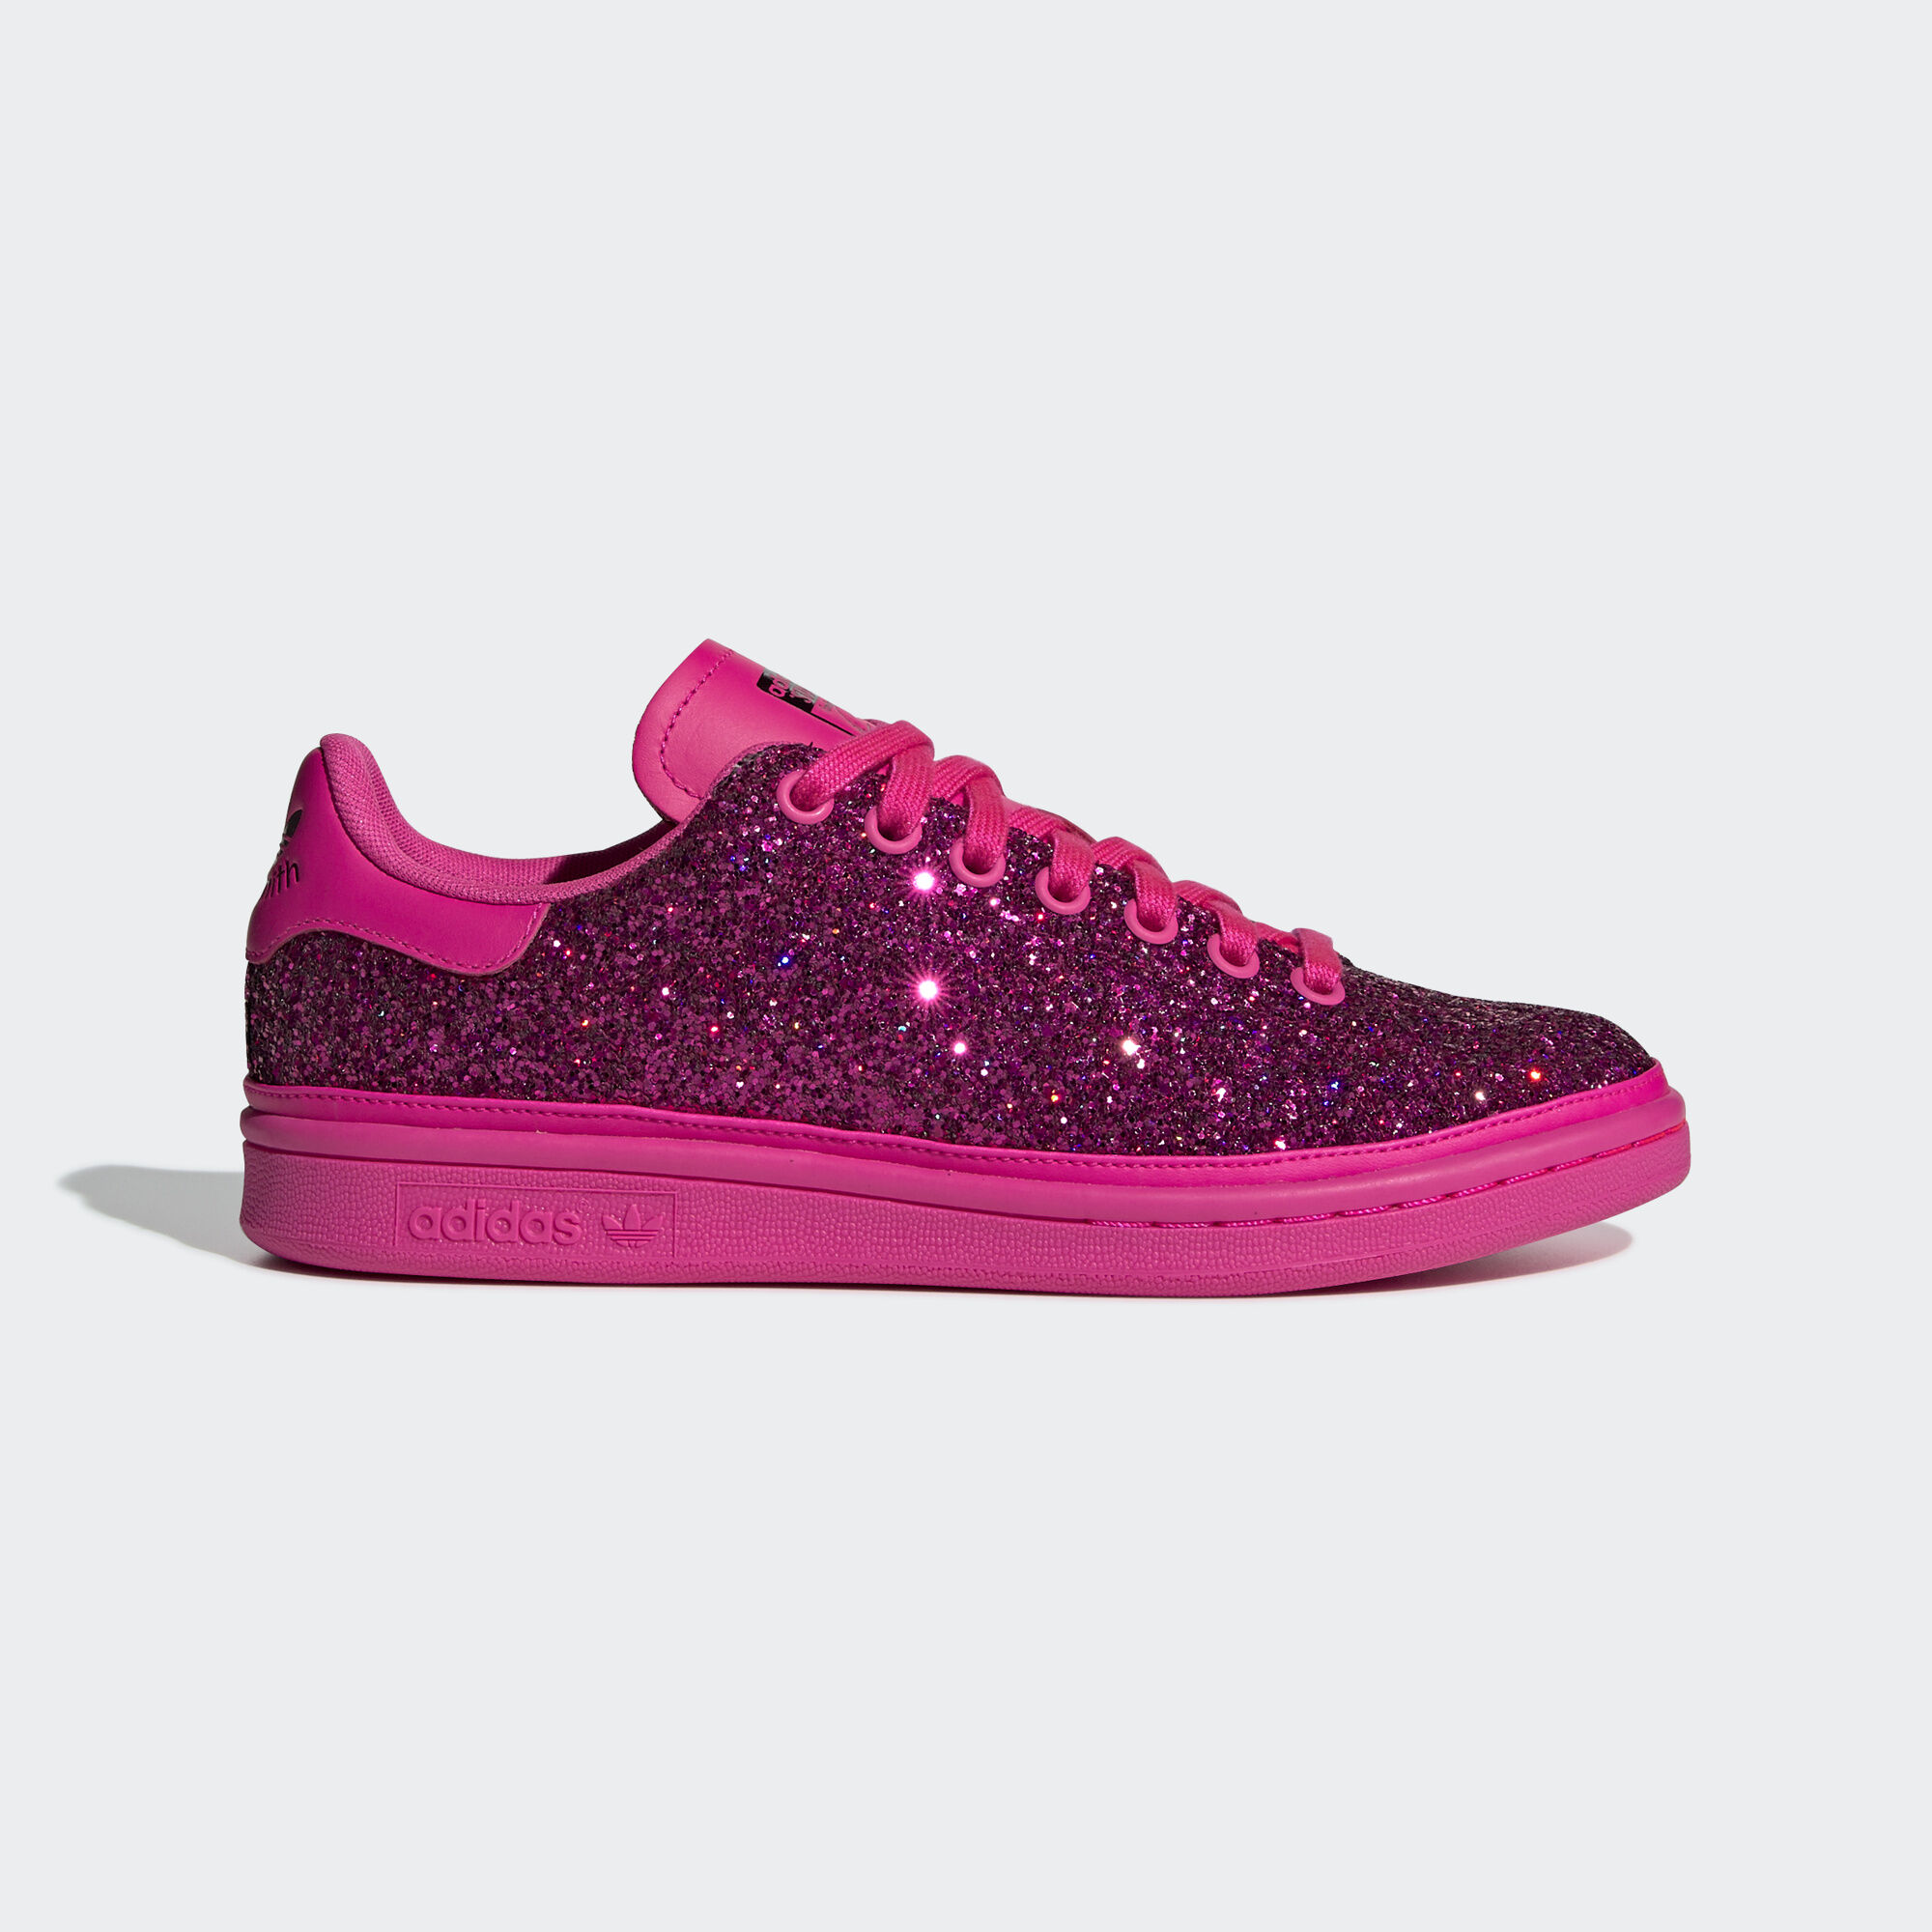 new arrival 9db9e 6cc1a ... cheap adidas stan smith shoes shock pink shock pink collegiate purple  bd8058 d75fe 716fc